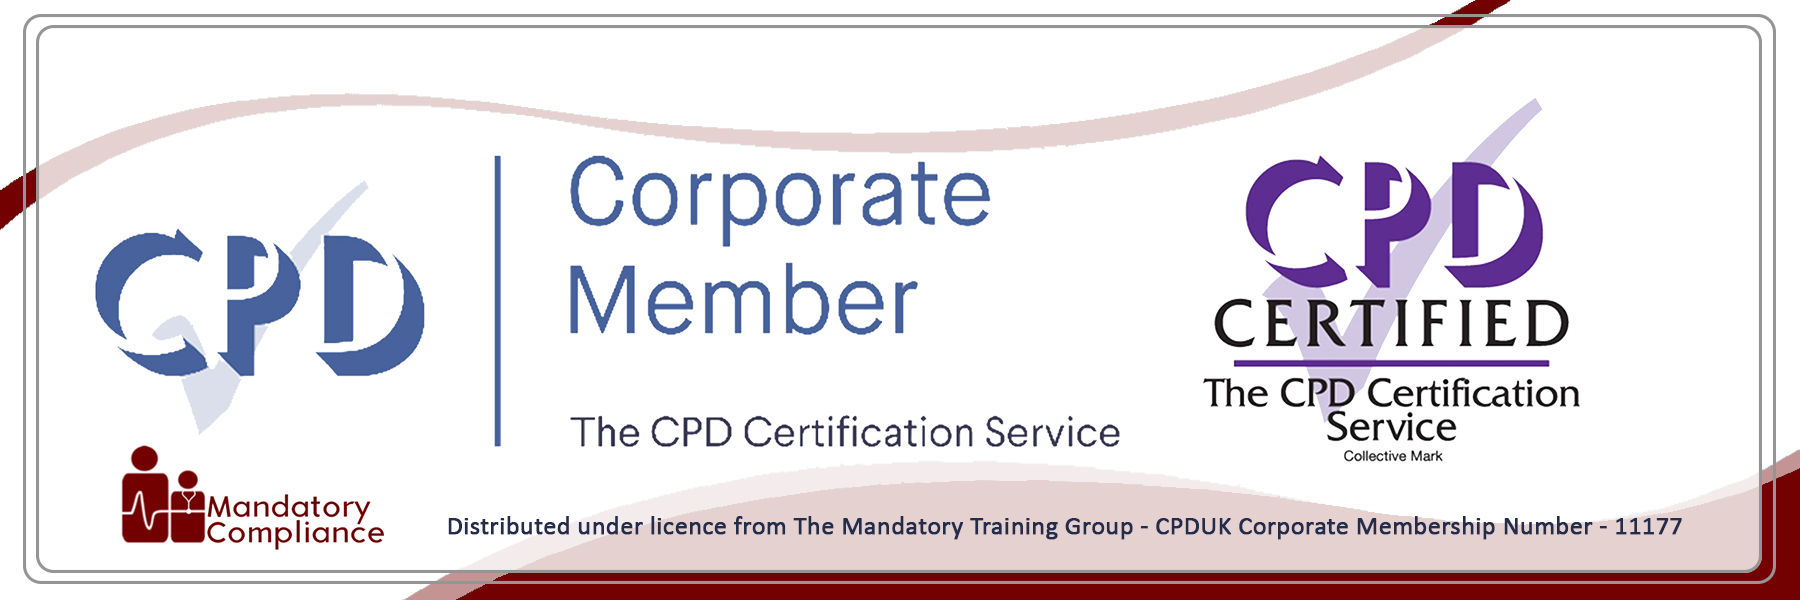 Motivating Your Sales Team Training - Online Training Course - CPD Accredited - Mandatory Compliance UK -